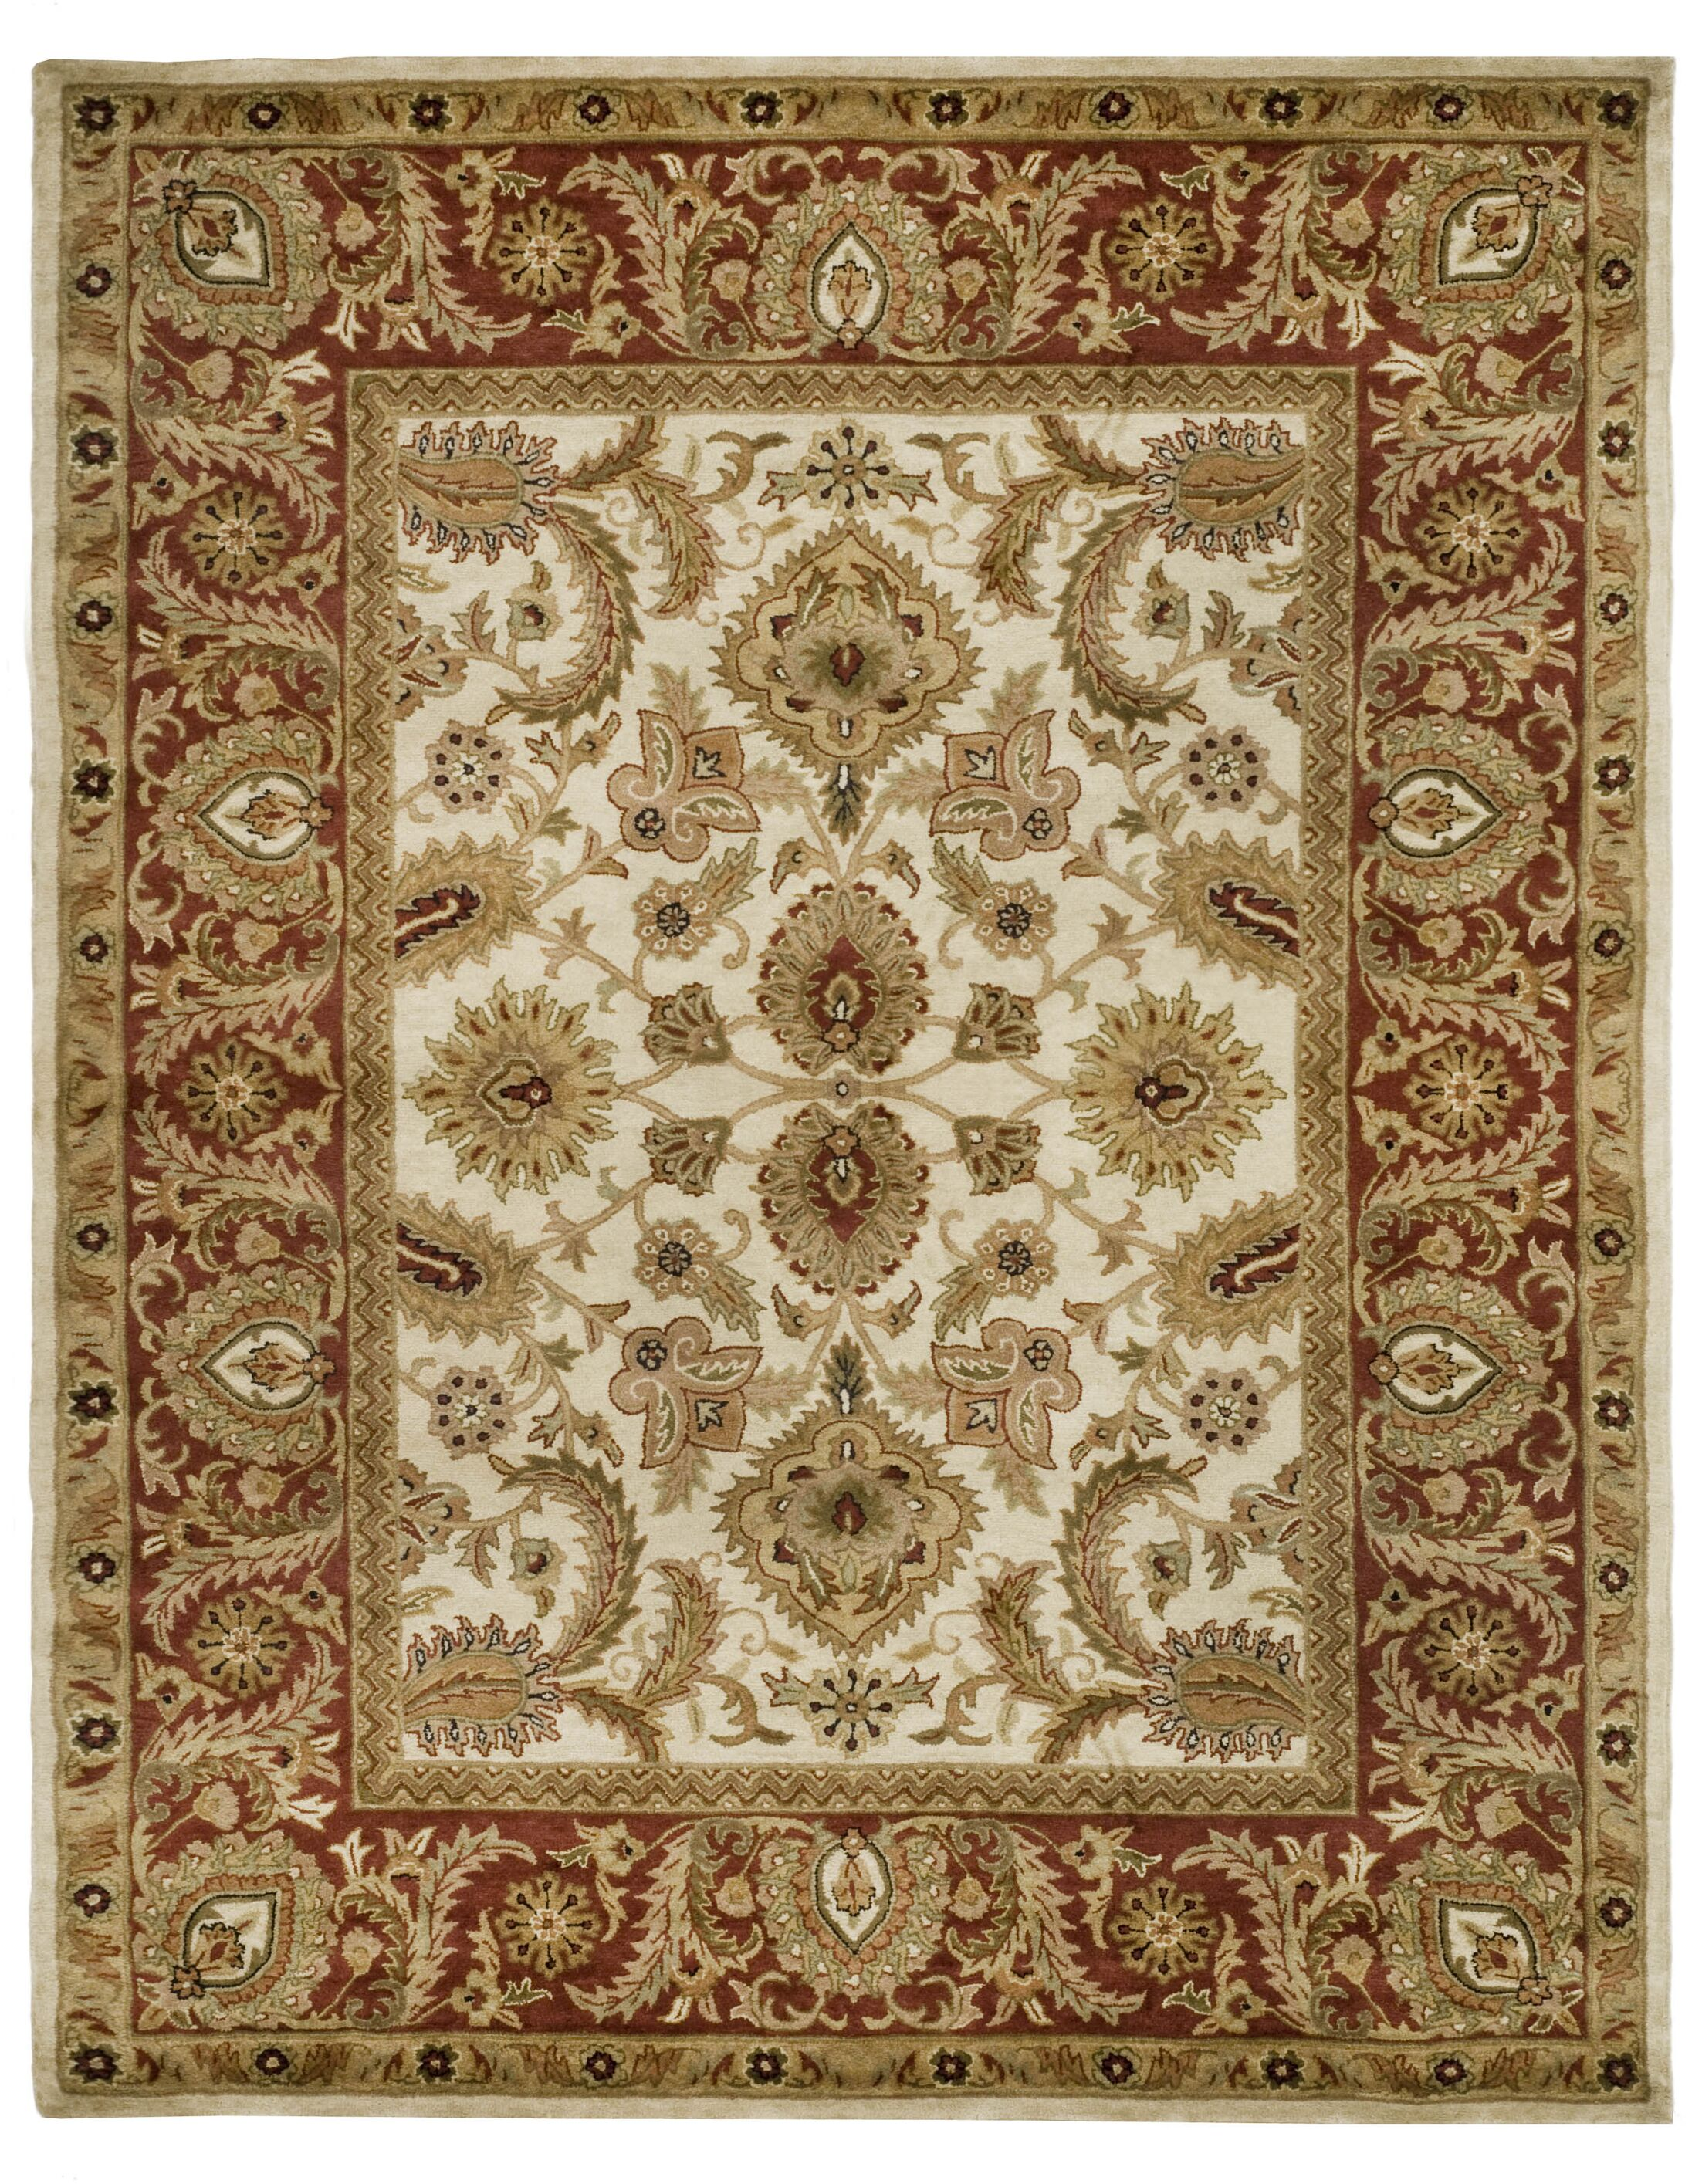 Bromley Hand-Tufted Wool Ivory/Red Area Rug Rug Size: Rectangle 7'6